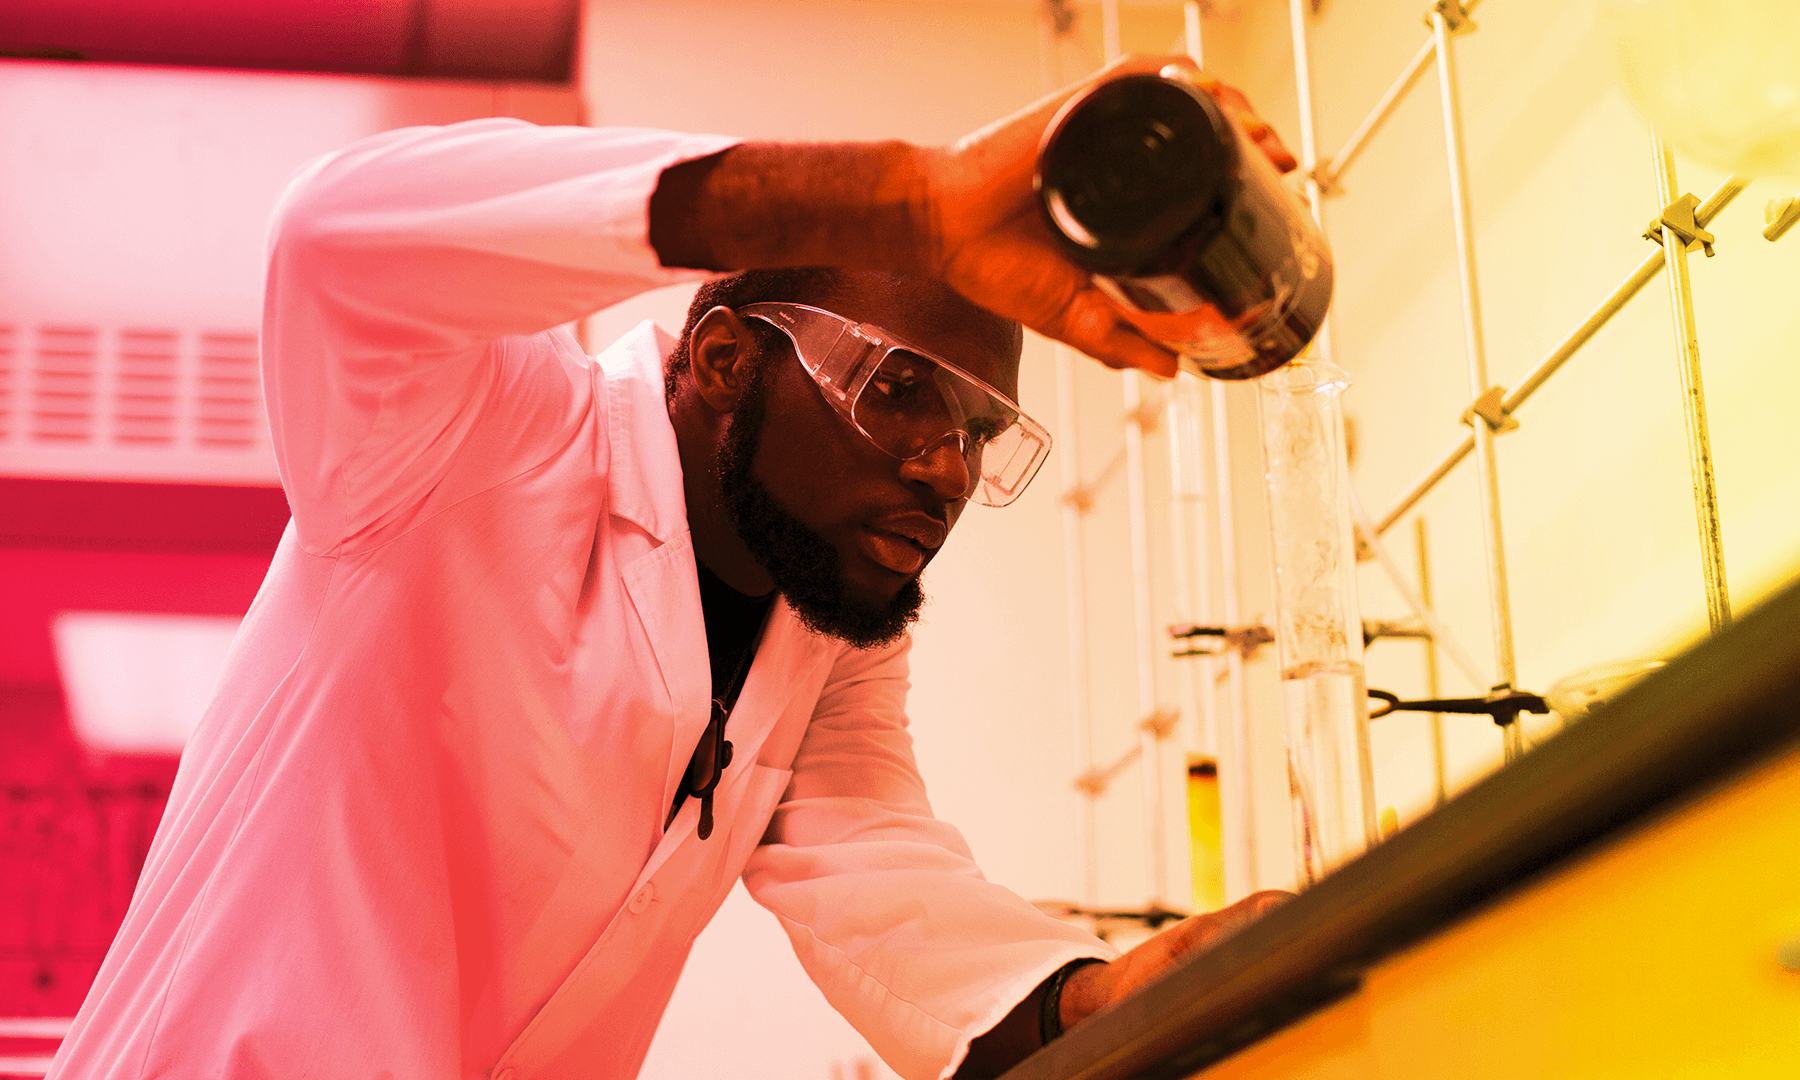 african american male student wearing lab coat and goggles pouring from a dark colored bottle into a test tube in a science lab